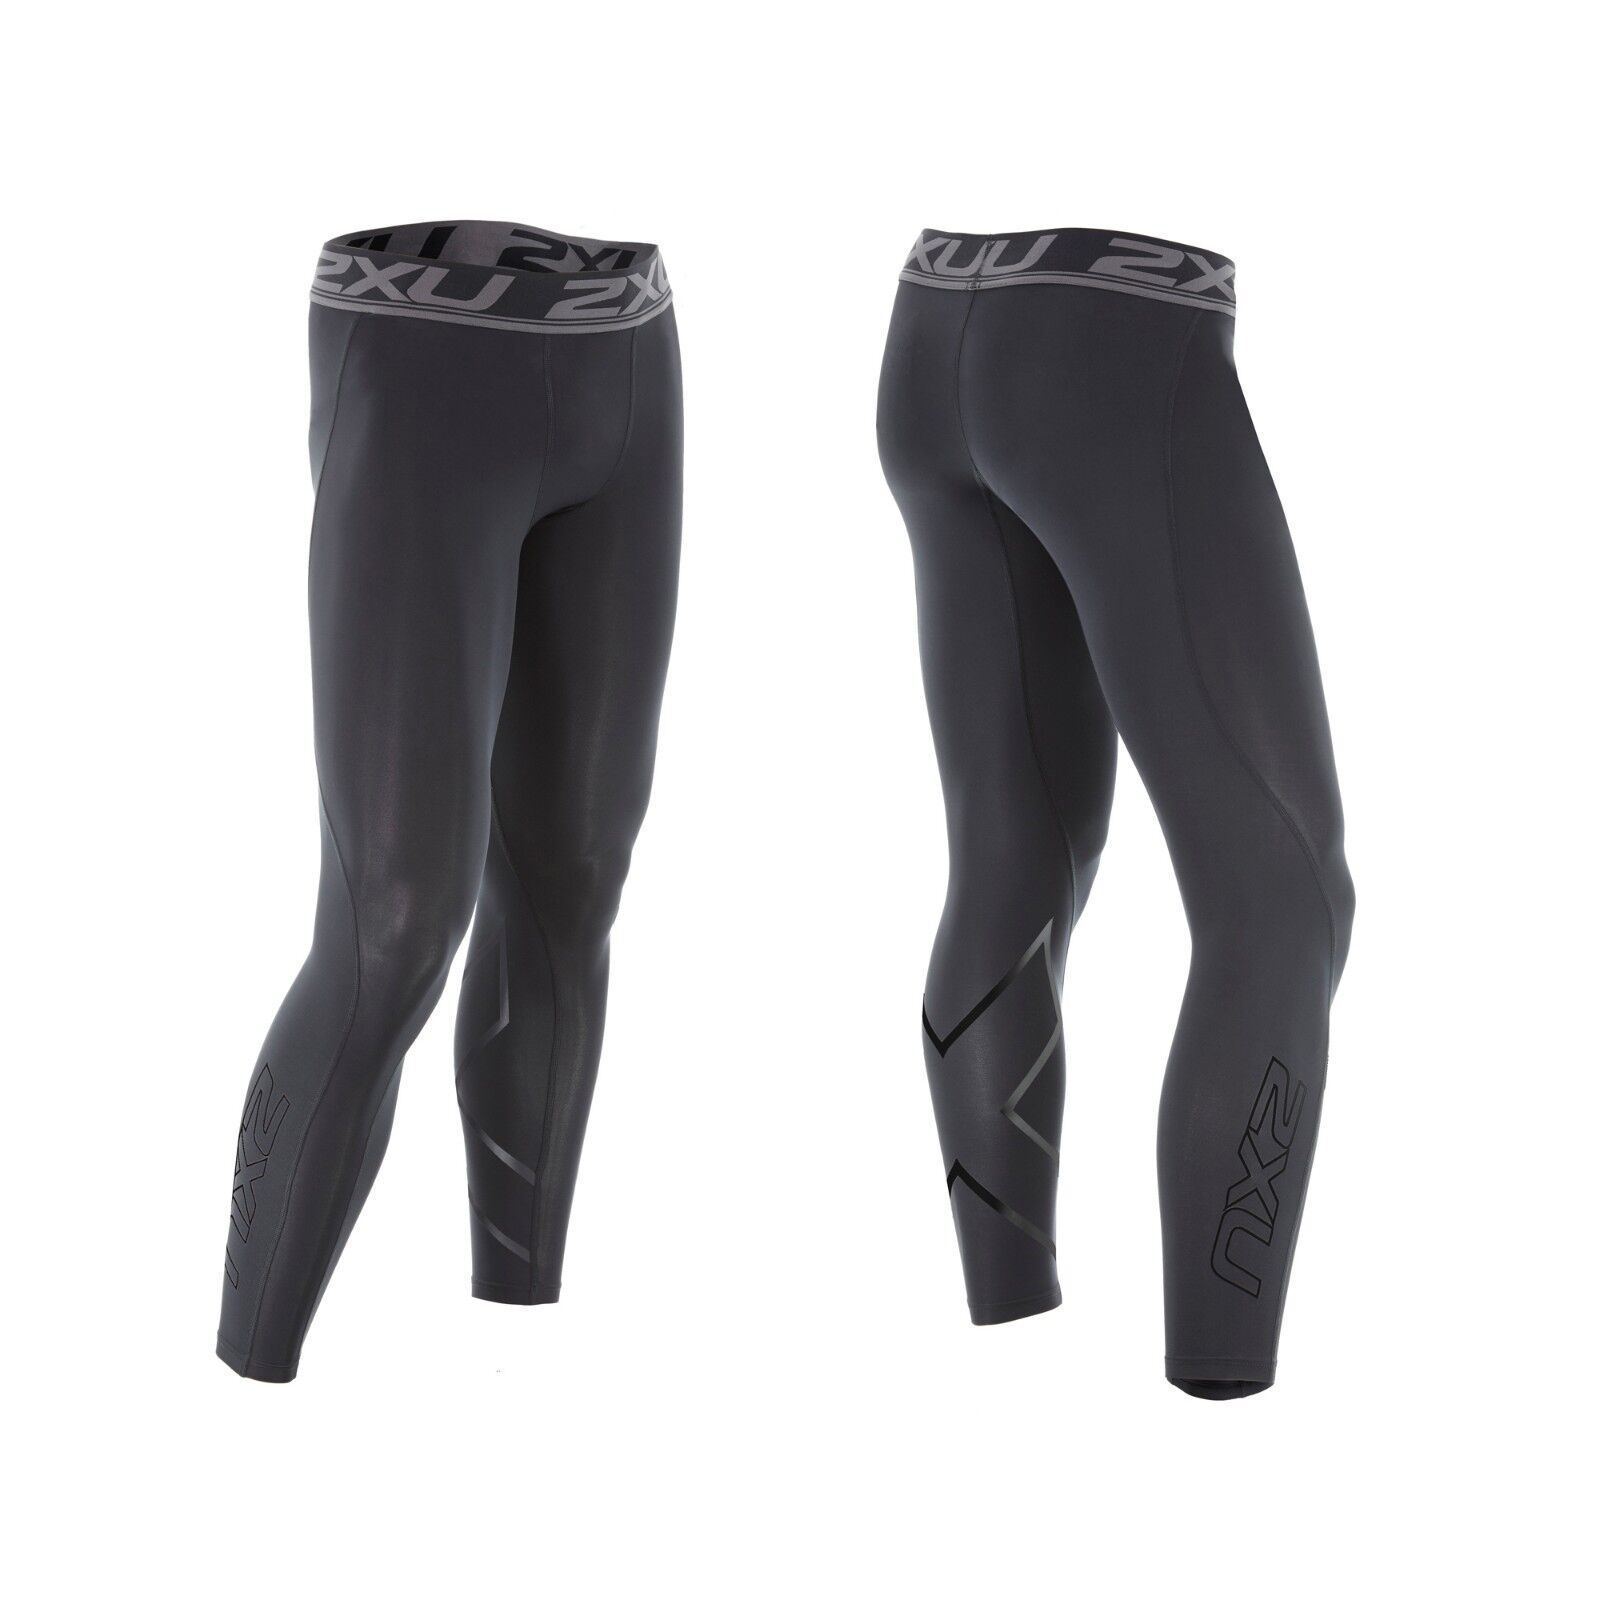 2XU Men's  Accelerate Compression Tights - 2019  enjoy 50% off